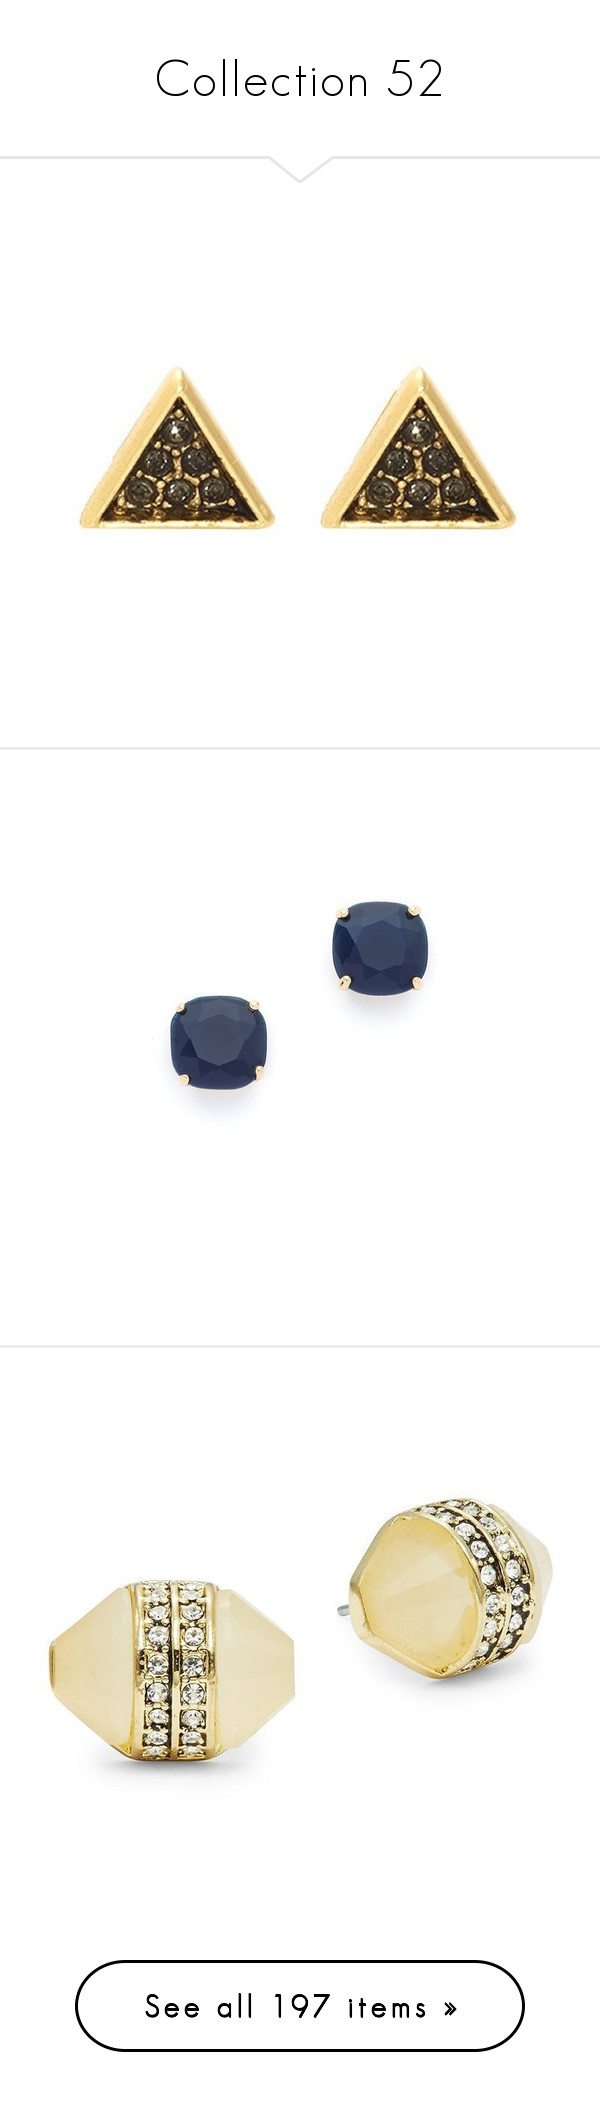 """""""Collection 52"""" by cdepapp on Polyvore featuring jewelry, earrings, nickel free stud earrings, pave stud earrings, pave jewelry, stud earring set, triangle stud earrings, navy, square earrings and navy blue earrings"""